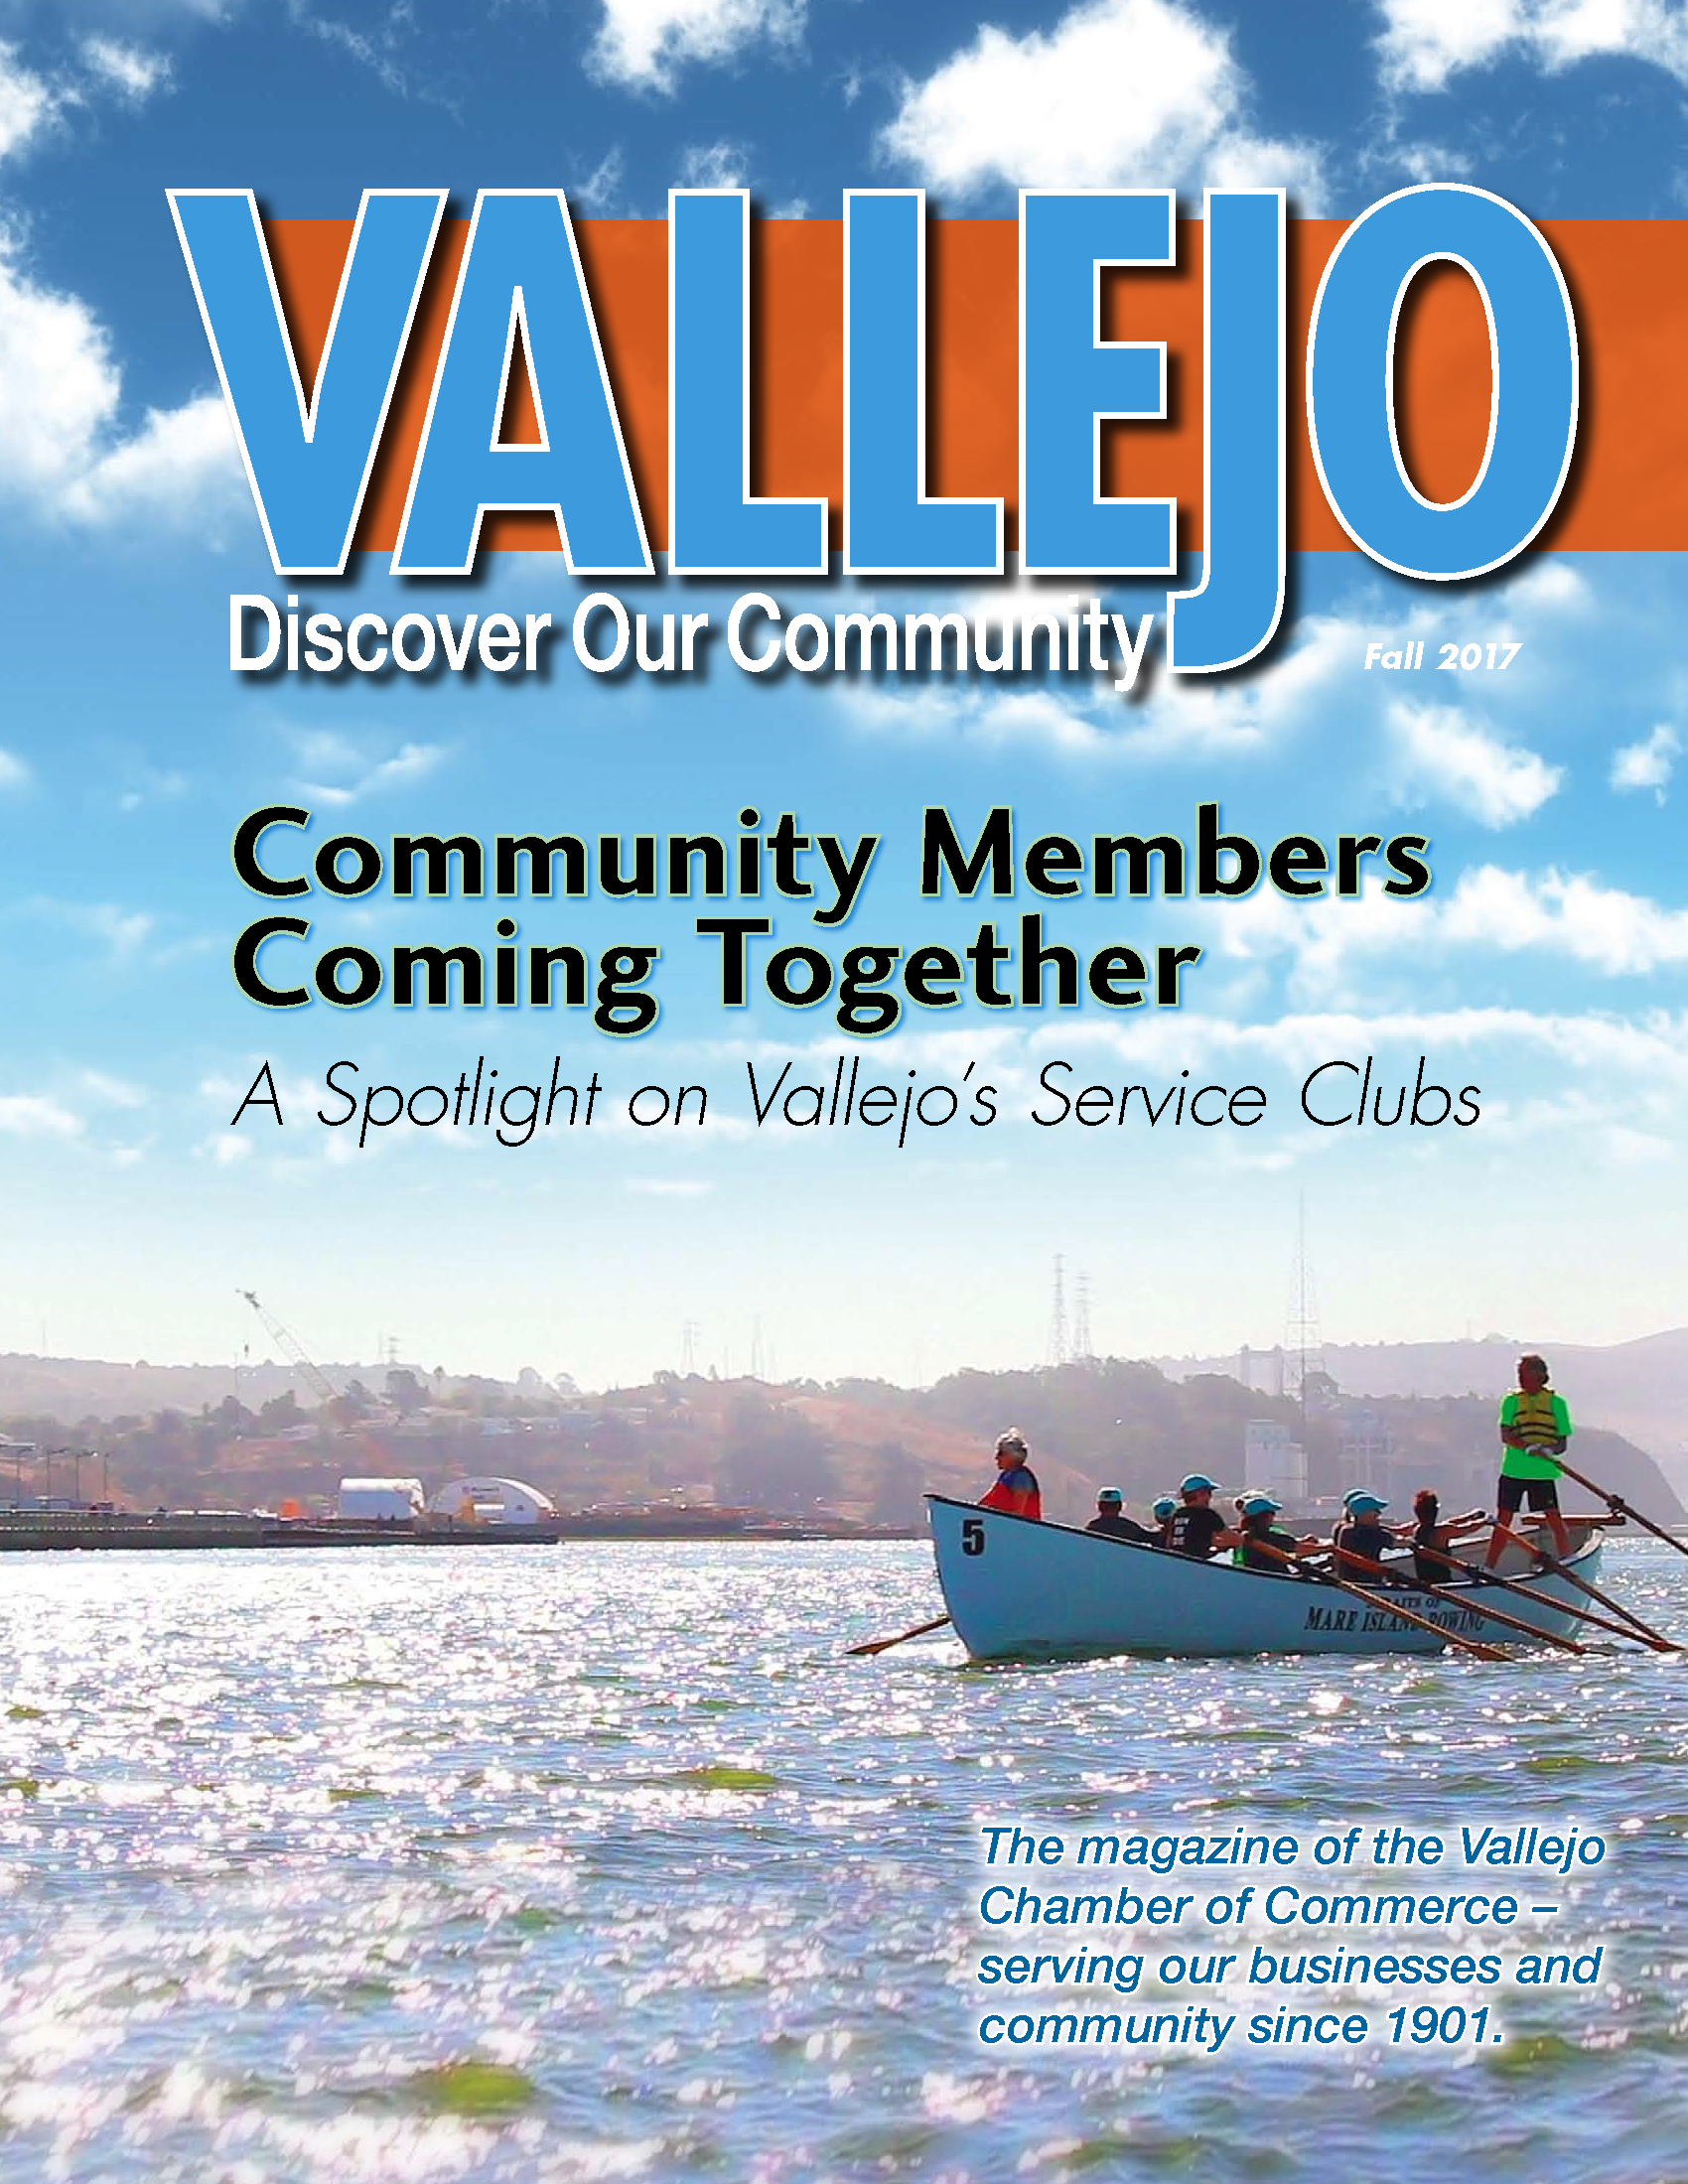 Vallejo-Discover-Our-Community